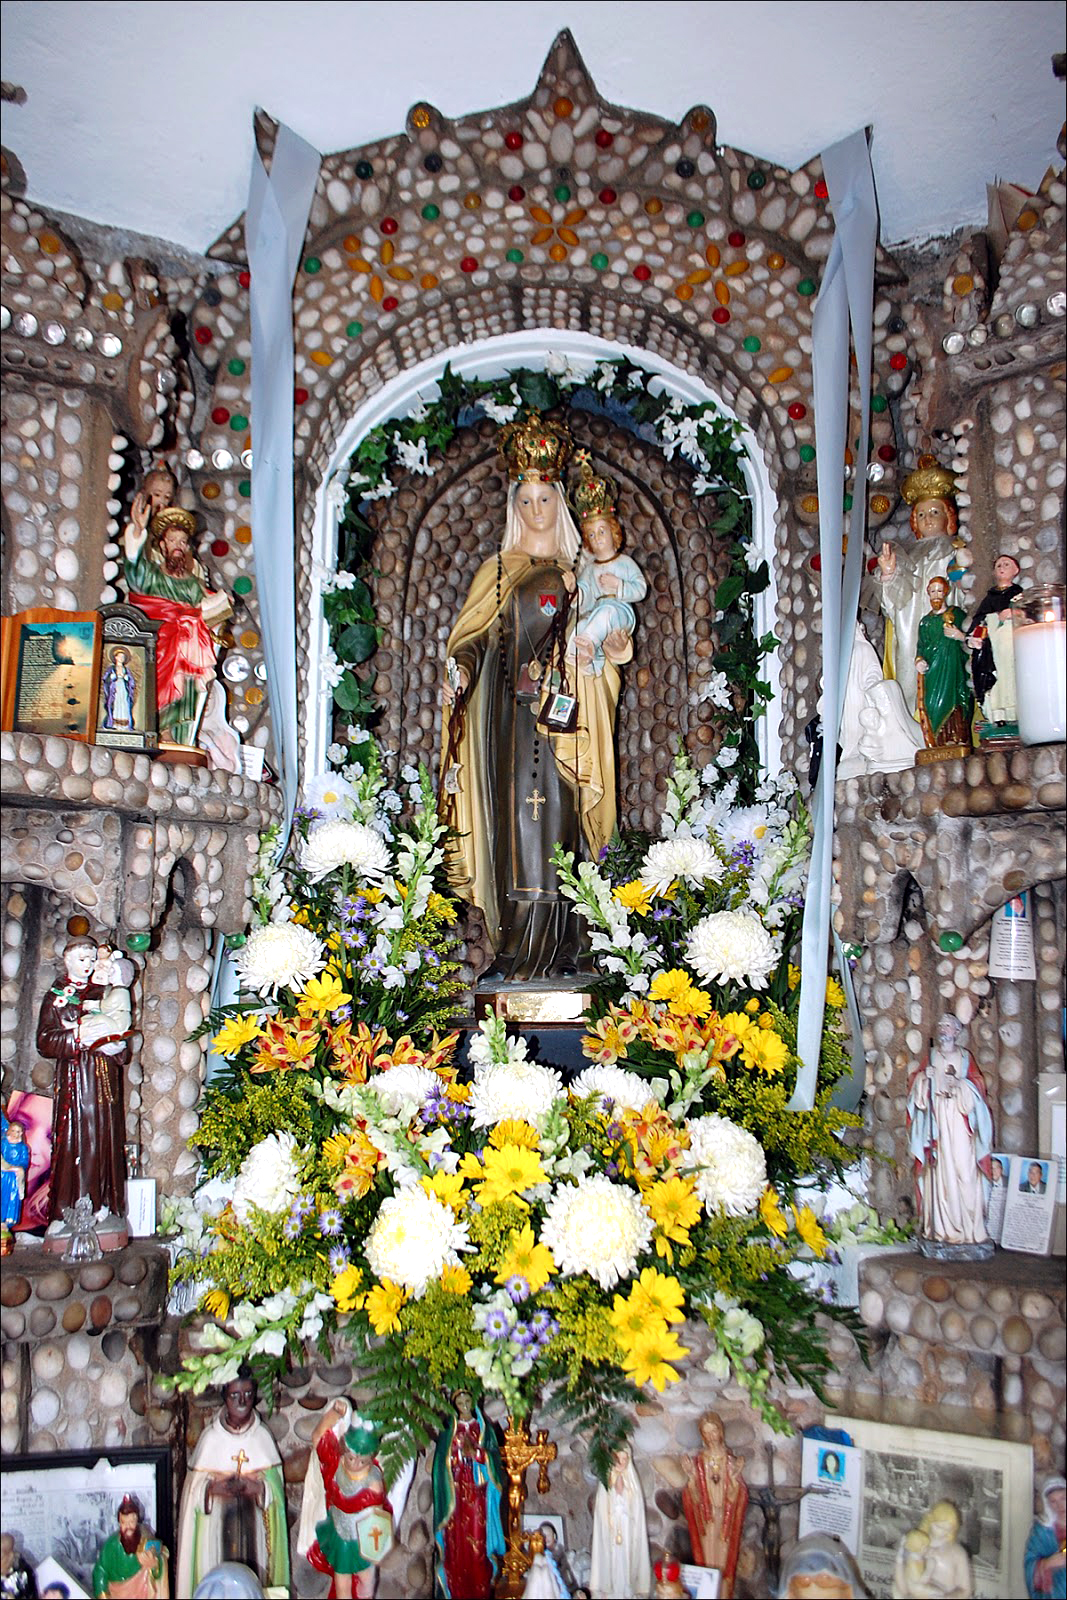 Il Regno: Praying the Novena to Our Lady of Mount Carmel at